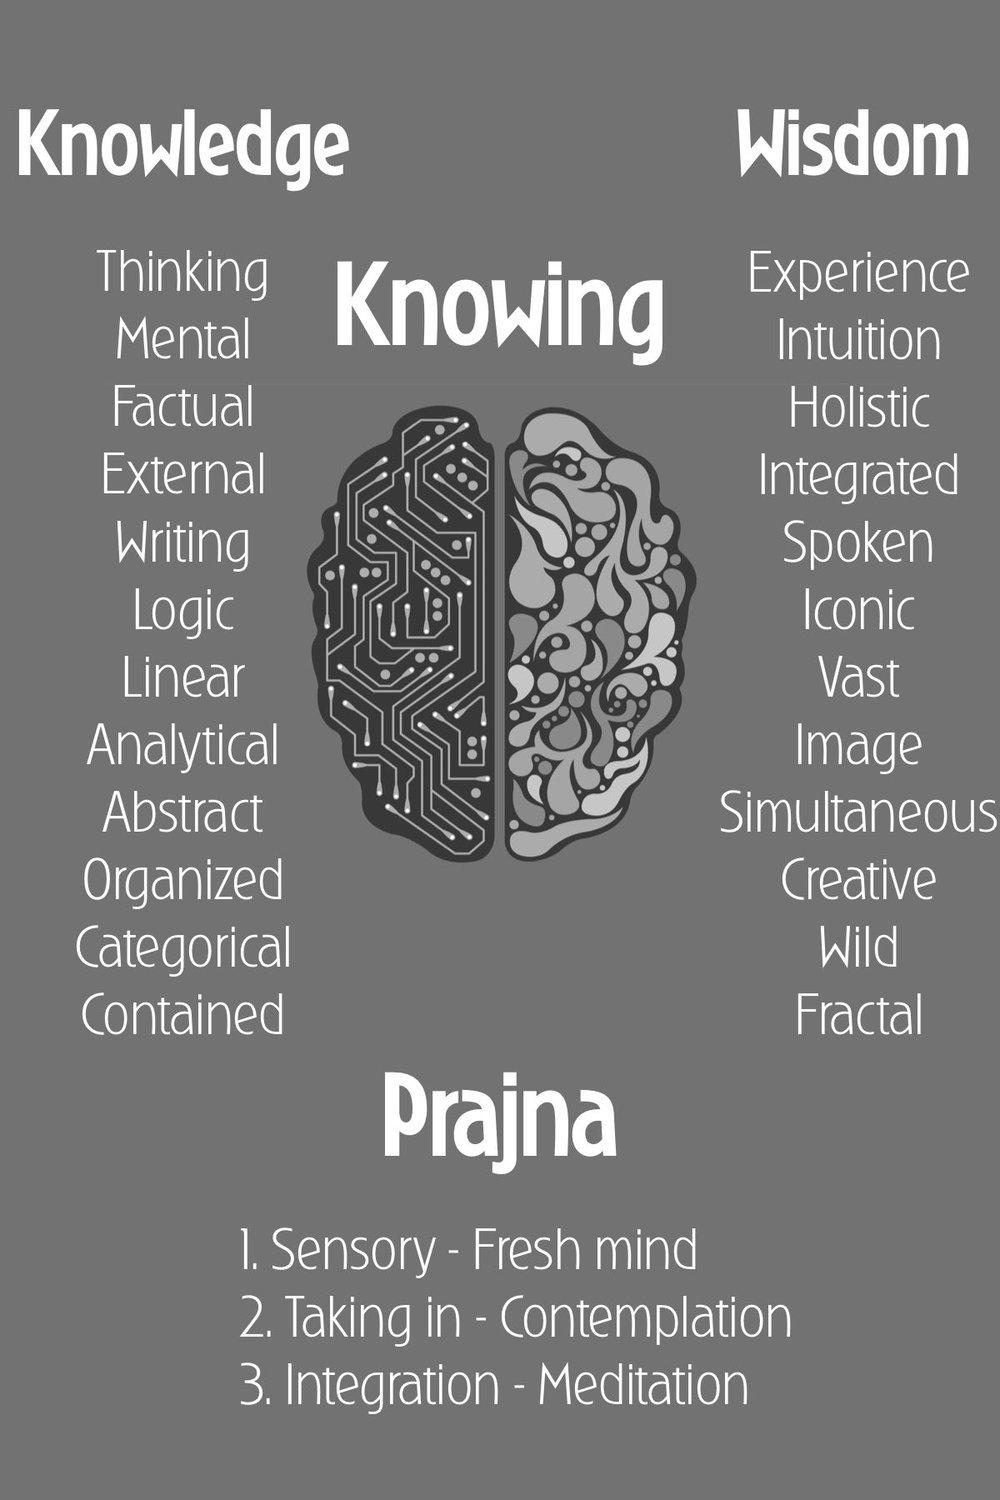 Modes of knowing, and the sequence for prajna